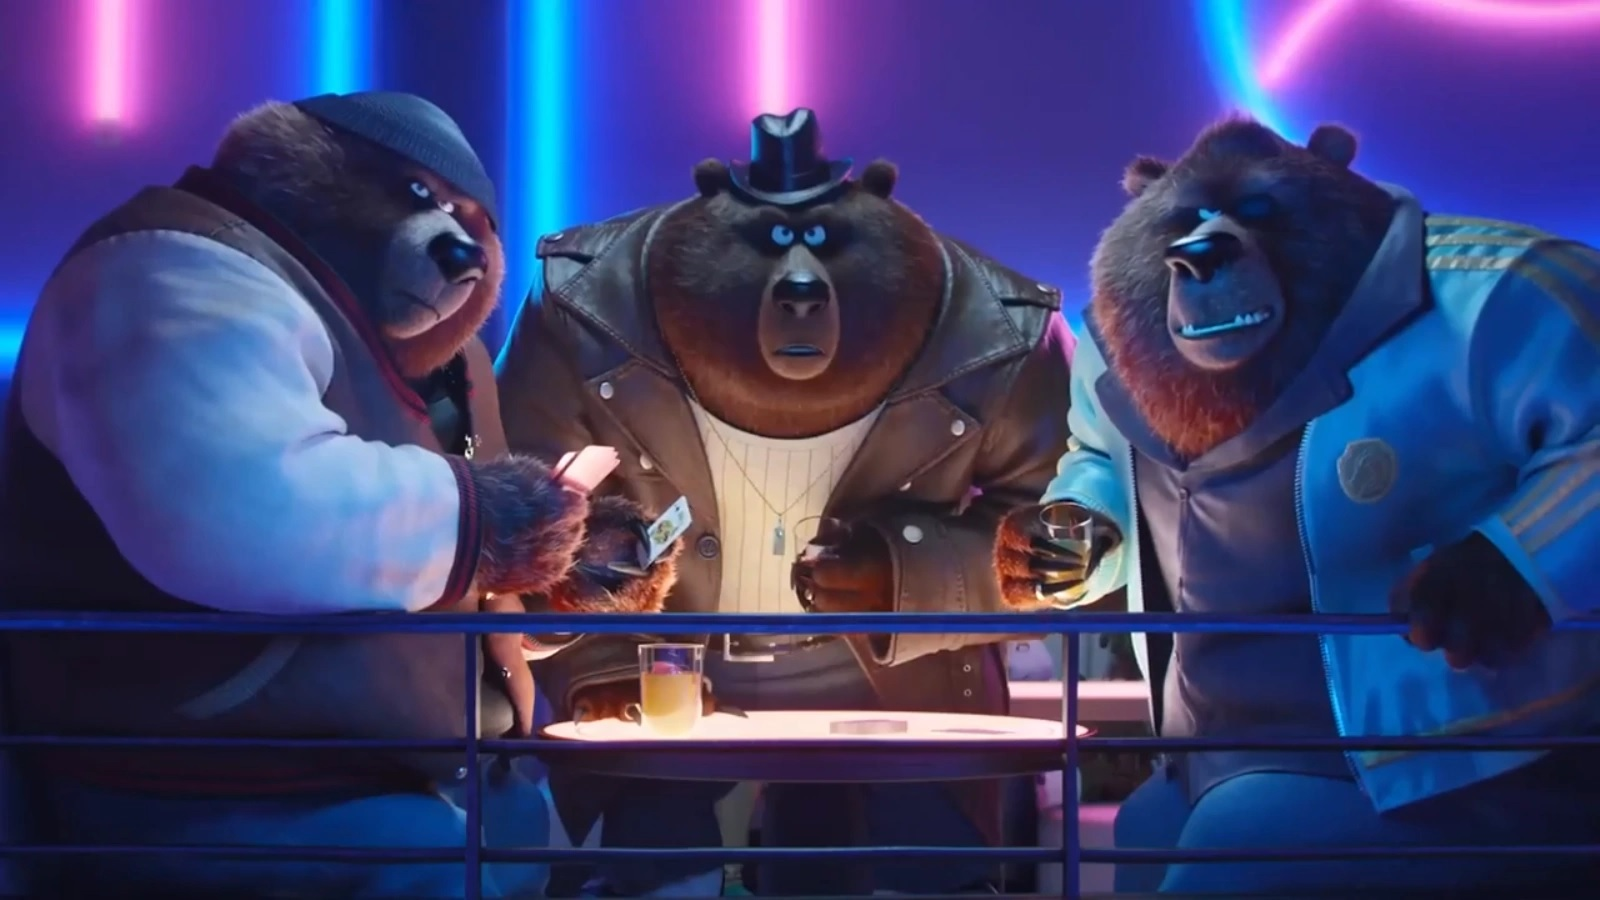 The Bears (Sing)